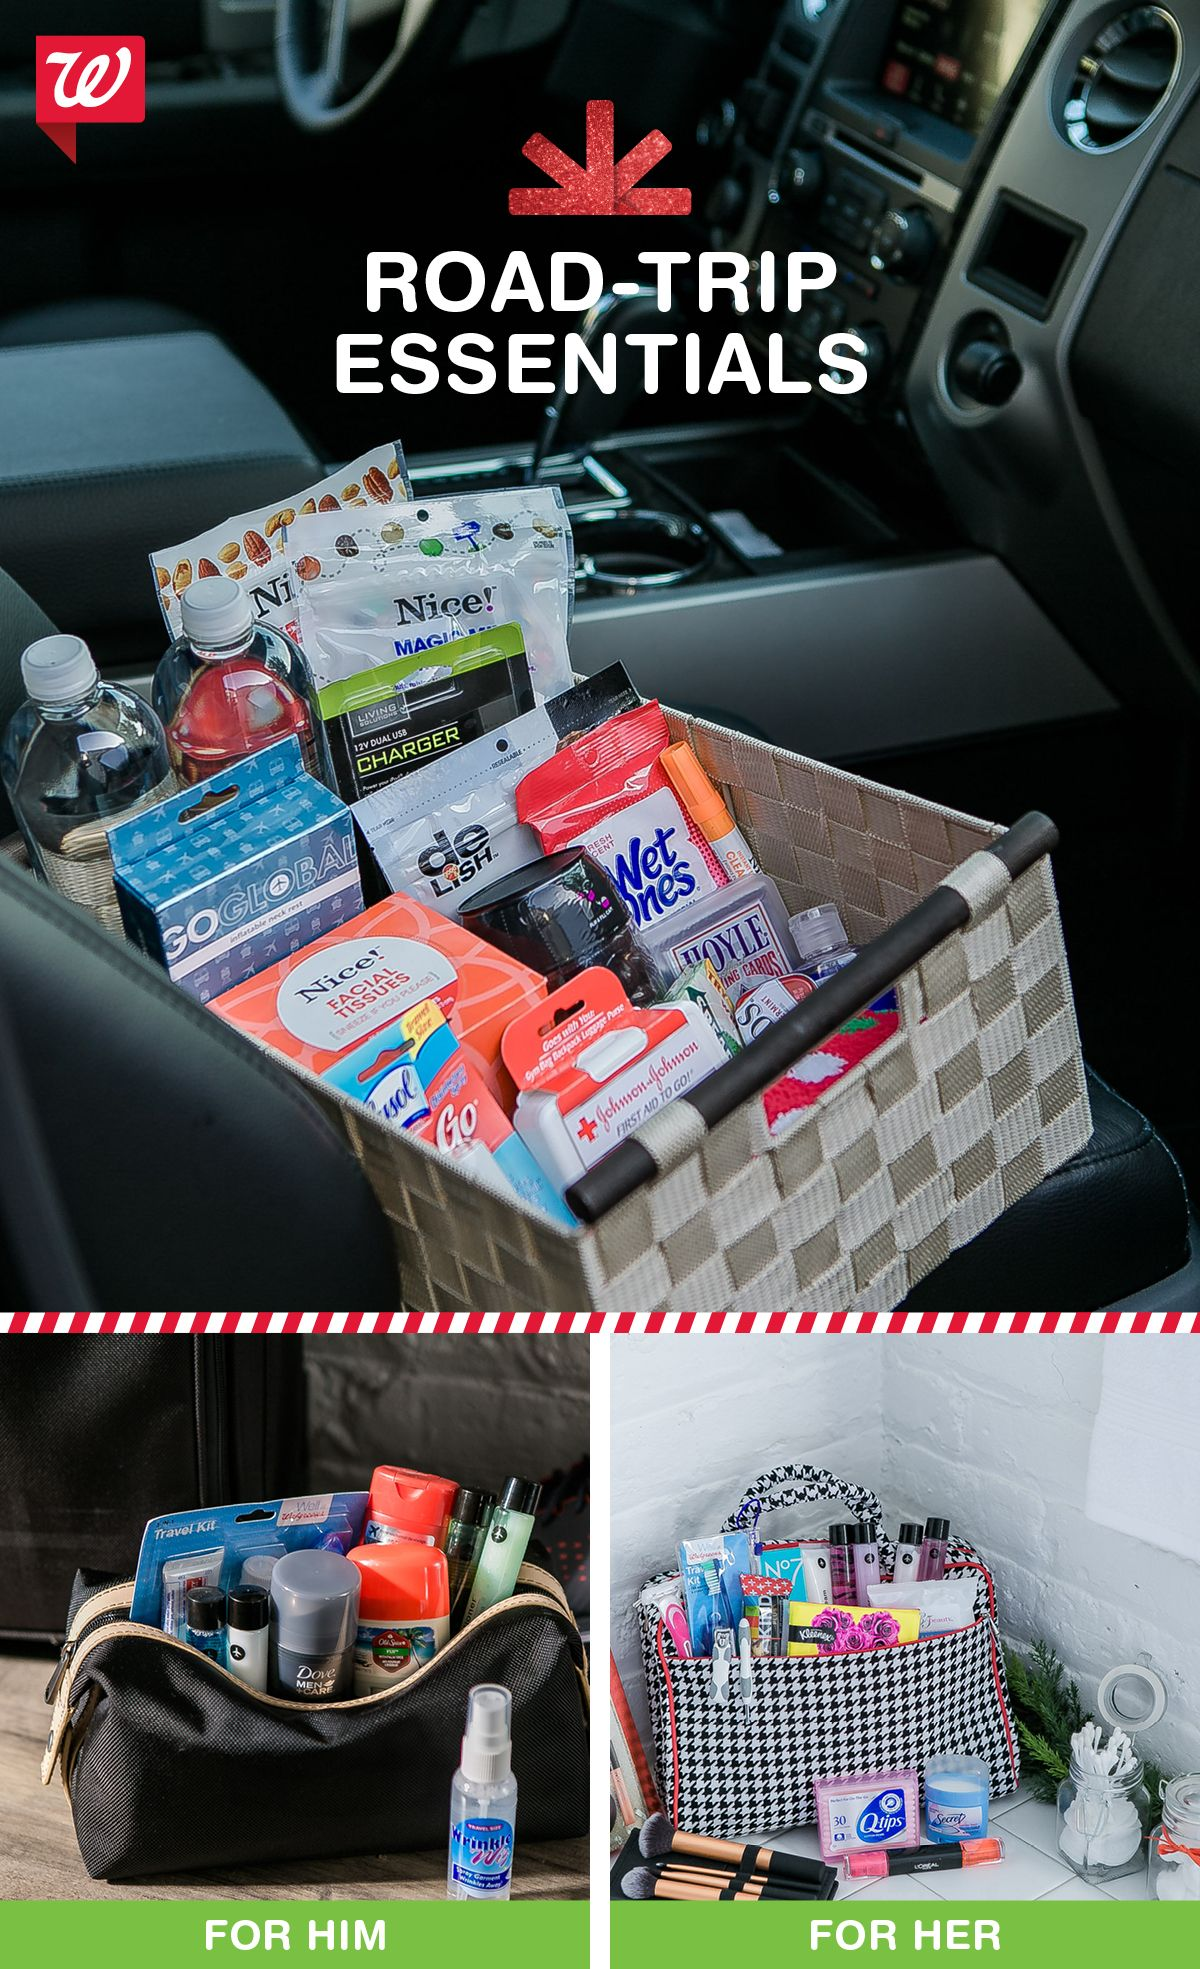 Travel Light This Holiday Car Road Trip Hacks Road Trip With